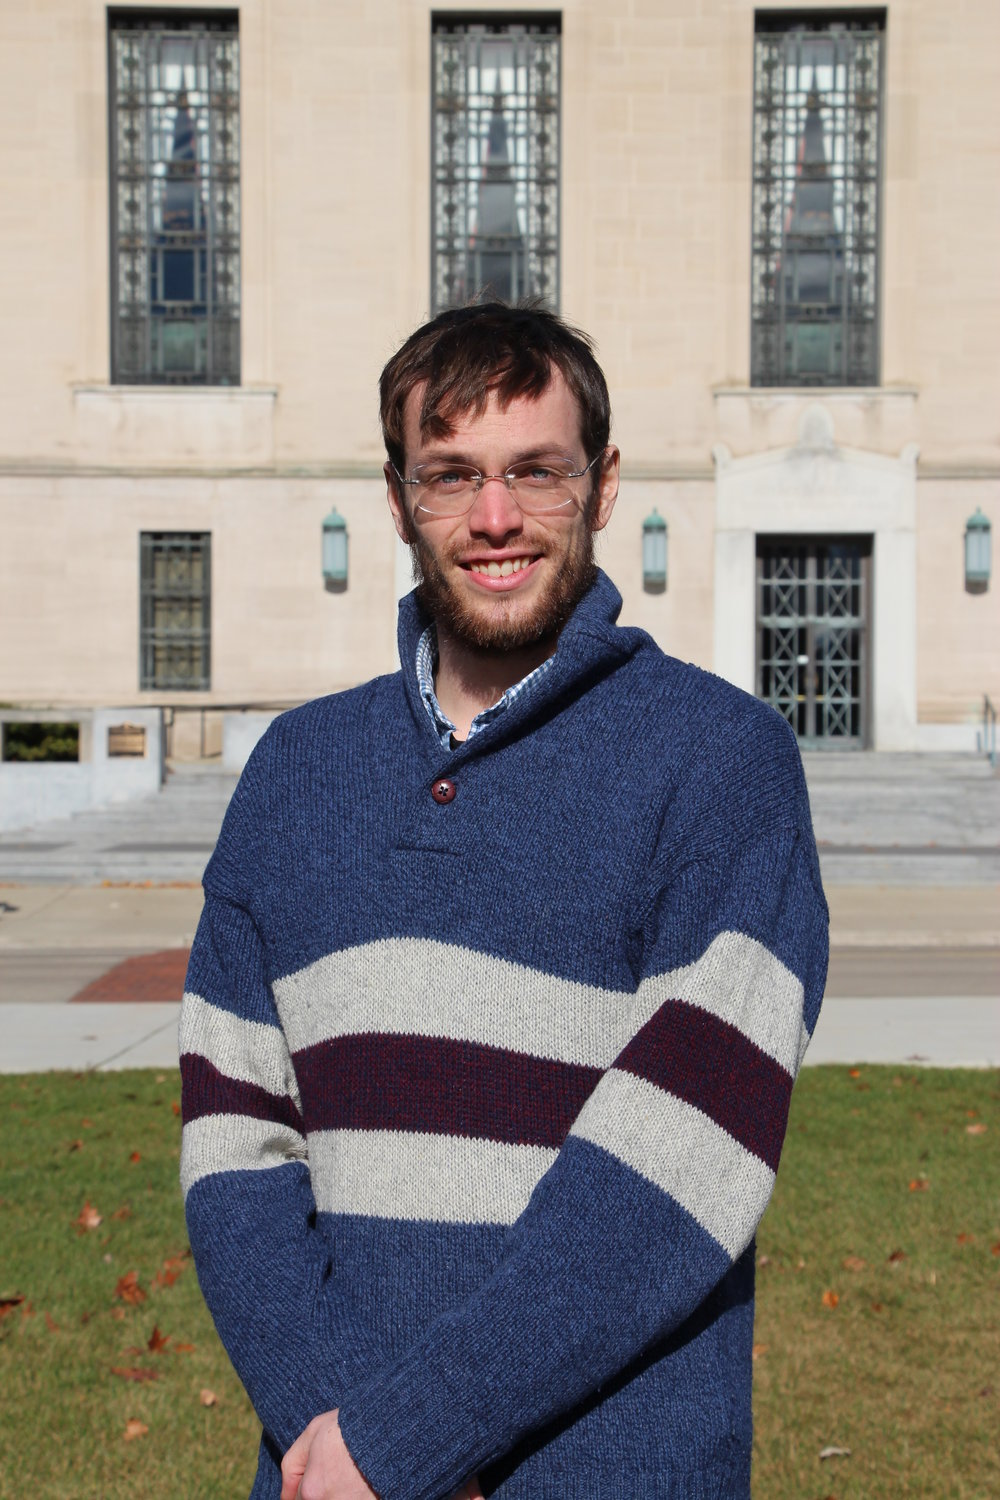 Thomas Shaw Applied Physics Graduate Student Thomas joined the Veatch lab in January 2016, and is studying the regulation of ion channel dynamics by critical membrane lipids, using a variety of techniques including localization microscopy. He is also working on improving data analysis methods for localization microscopy. Outside the lab, he enjoys baking for friends, and learning about language and linguistics, among other things.